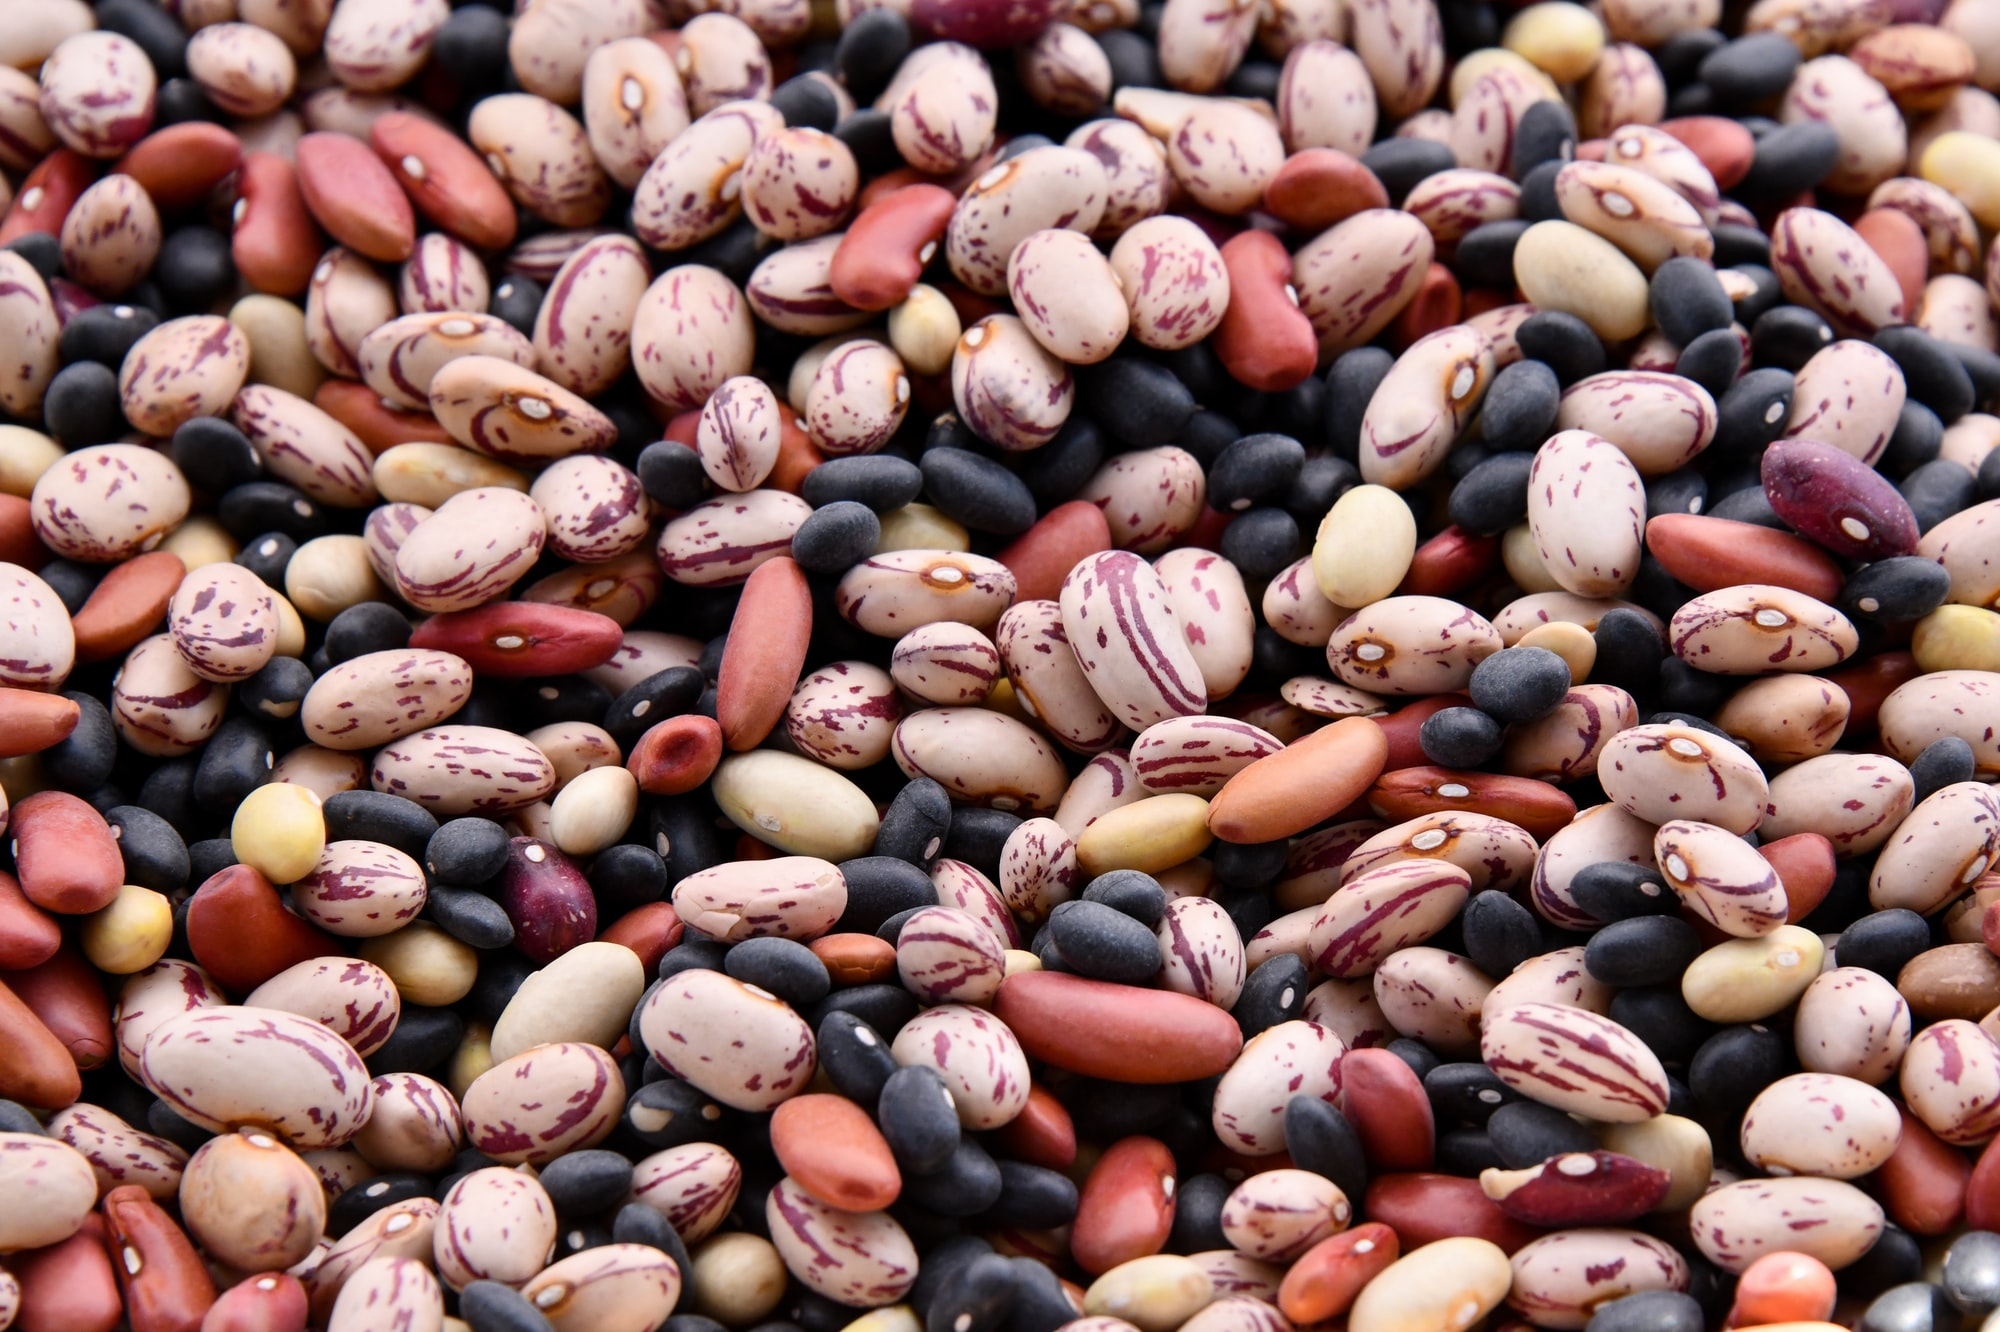 beans and legumes, beans and breastfeeding, legumes and breastfeeding